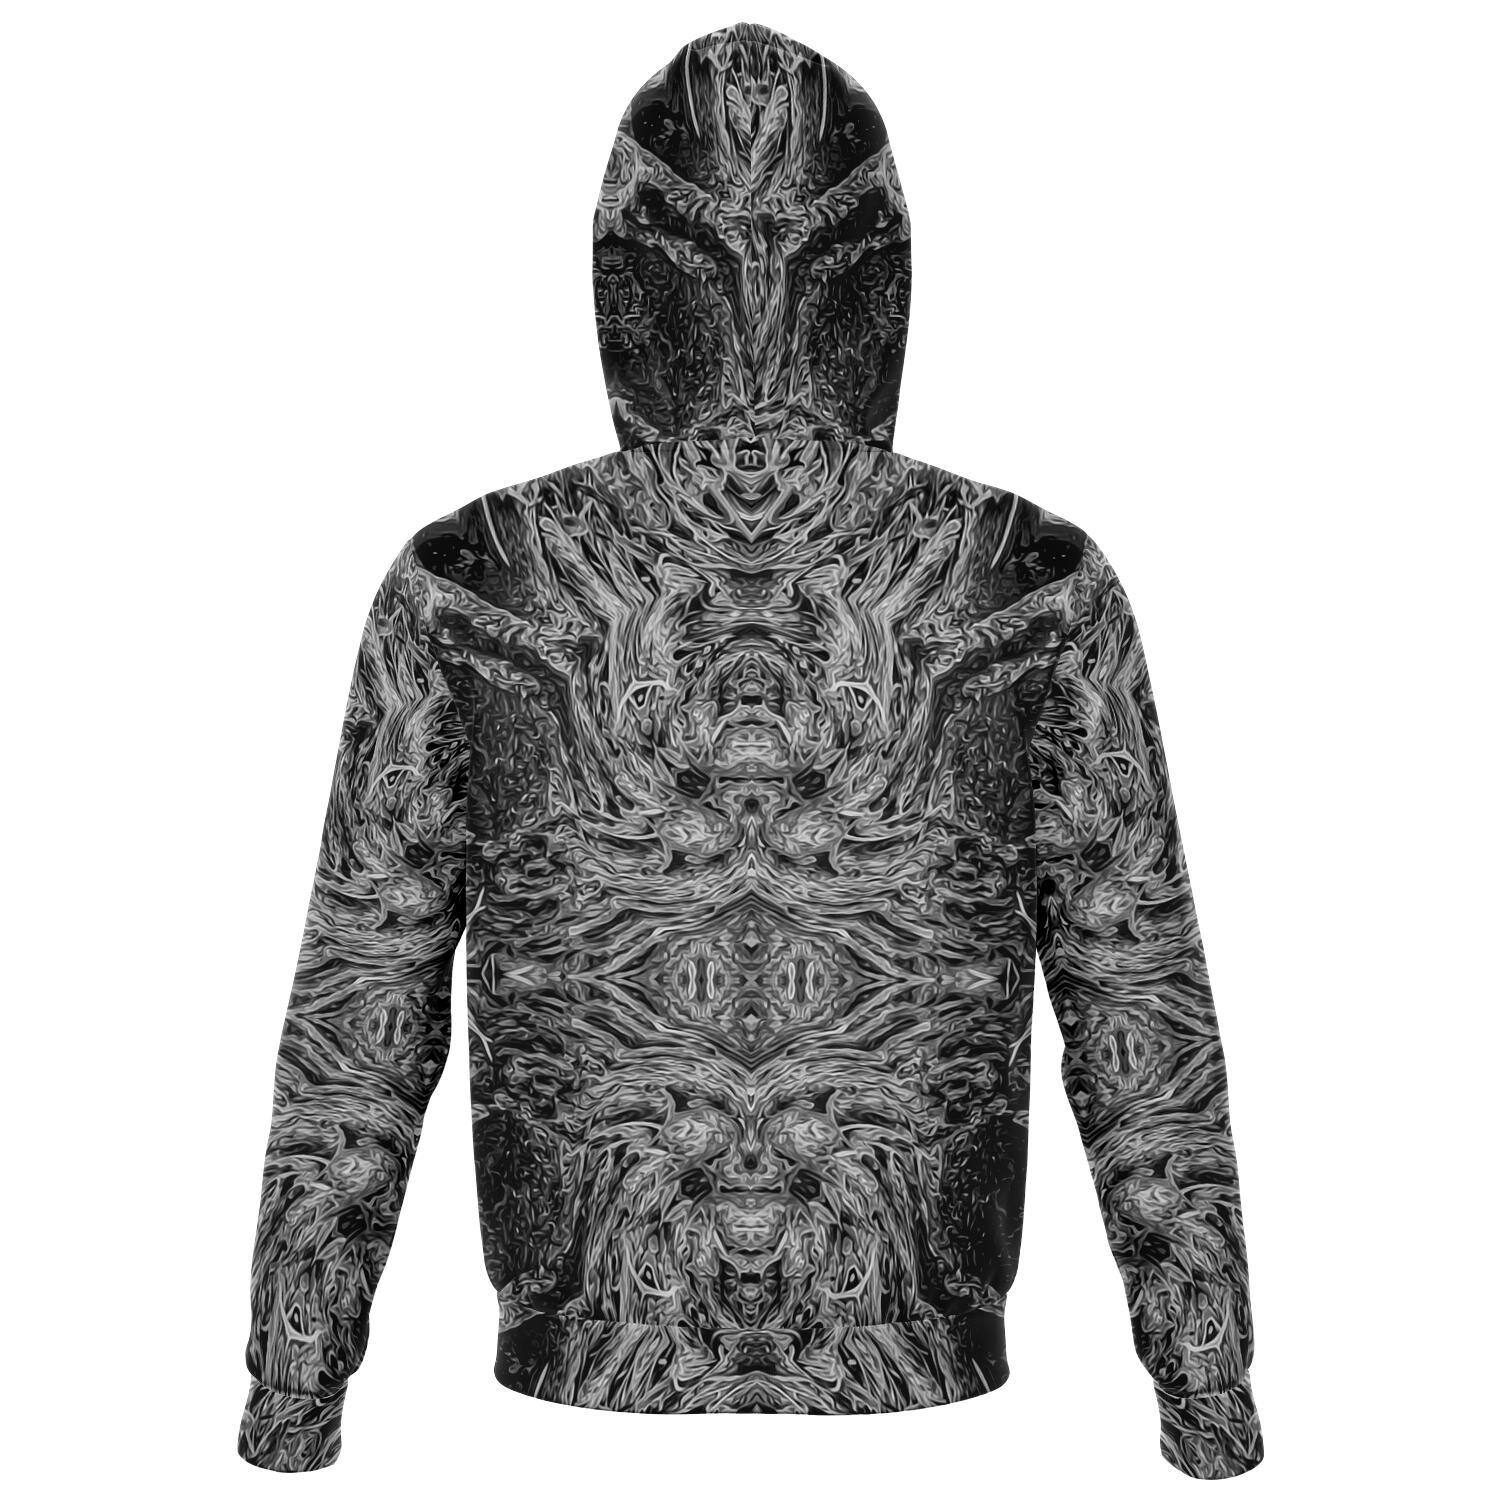 SHADOW PREMIUM ZIP UP HOODIE